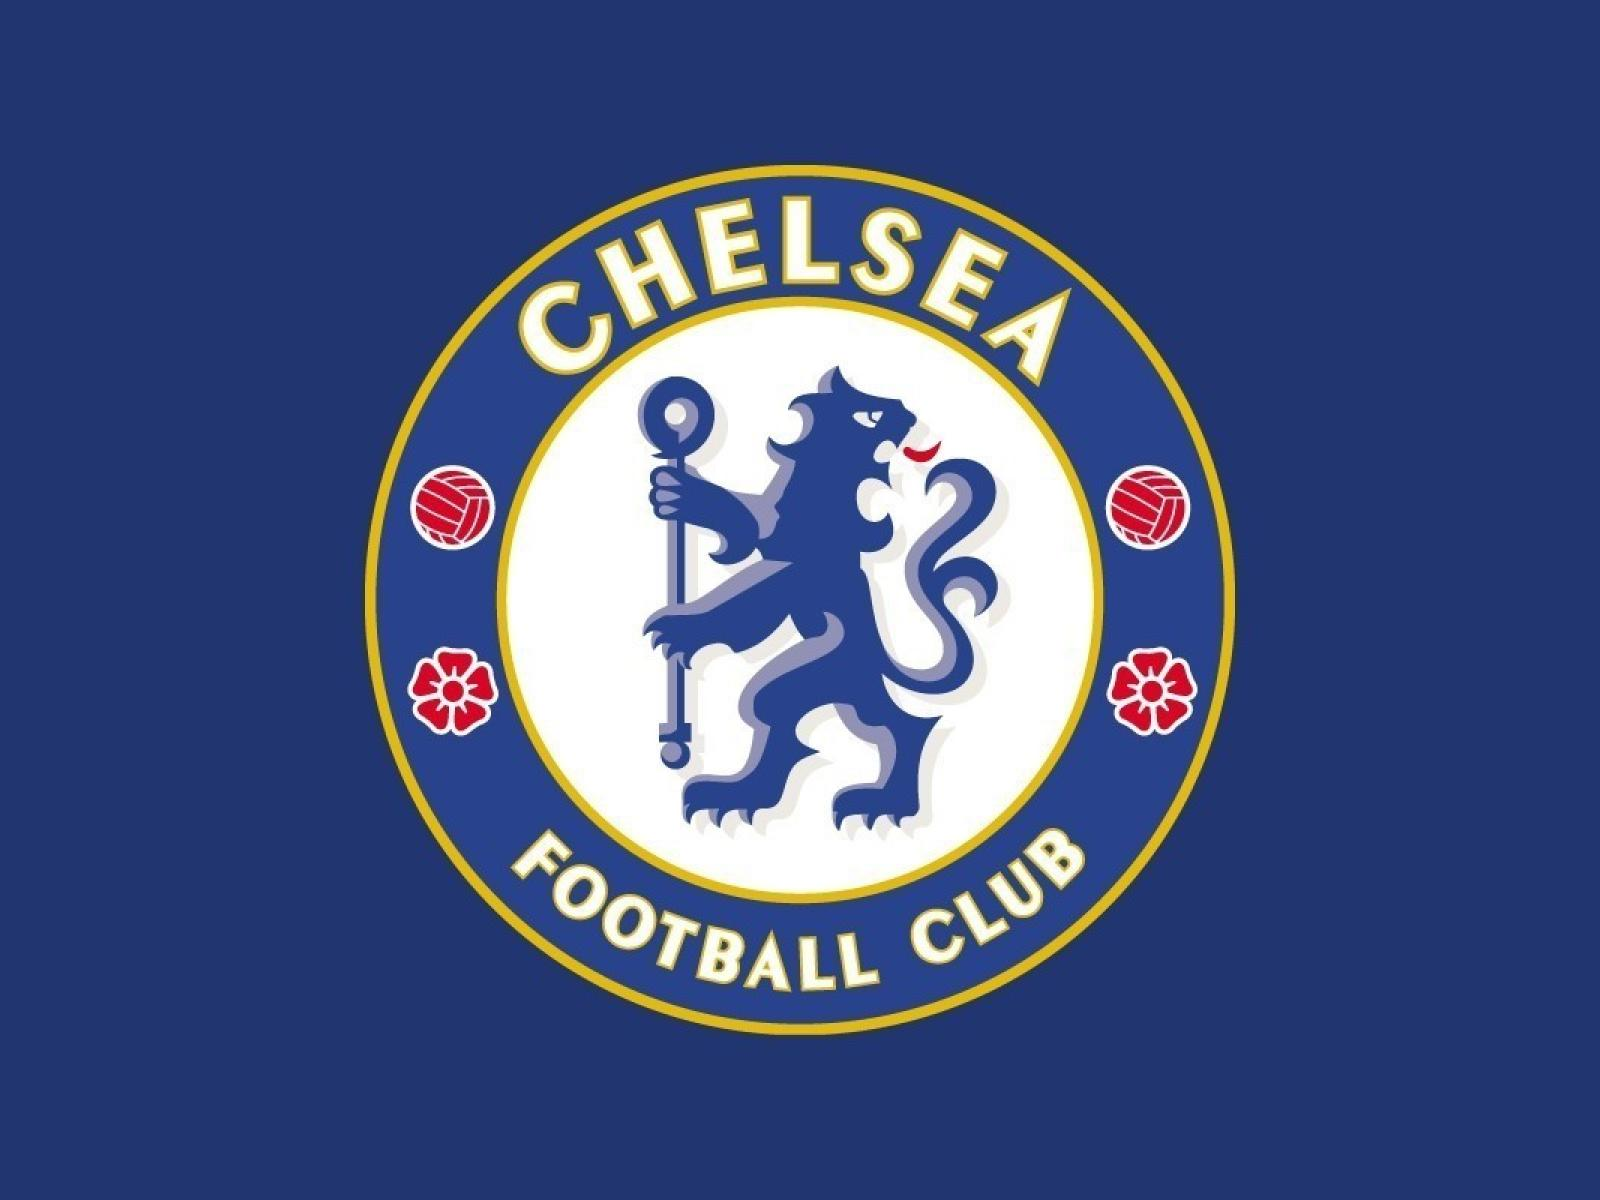 chelsea-fc-logo-wallpapers+02.jpg